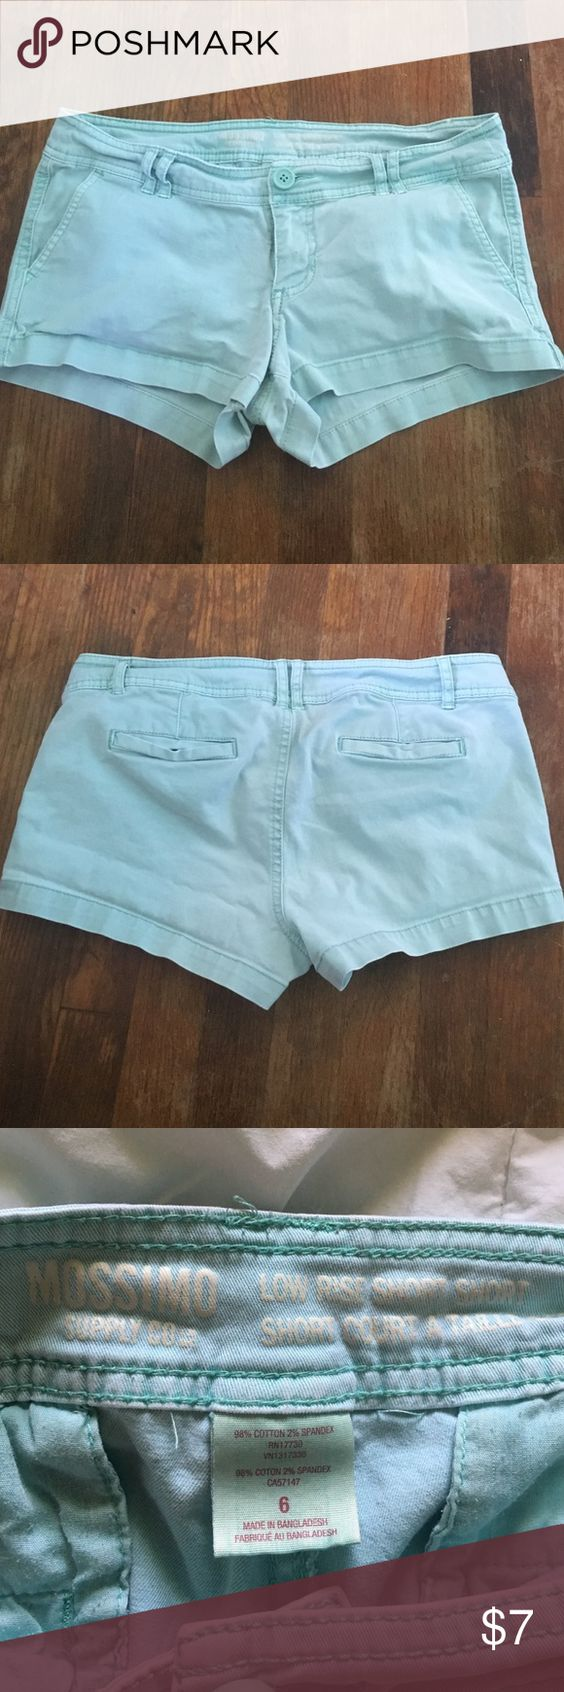 mint shorts size 6, gently used but no stains, from target Shorts